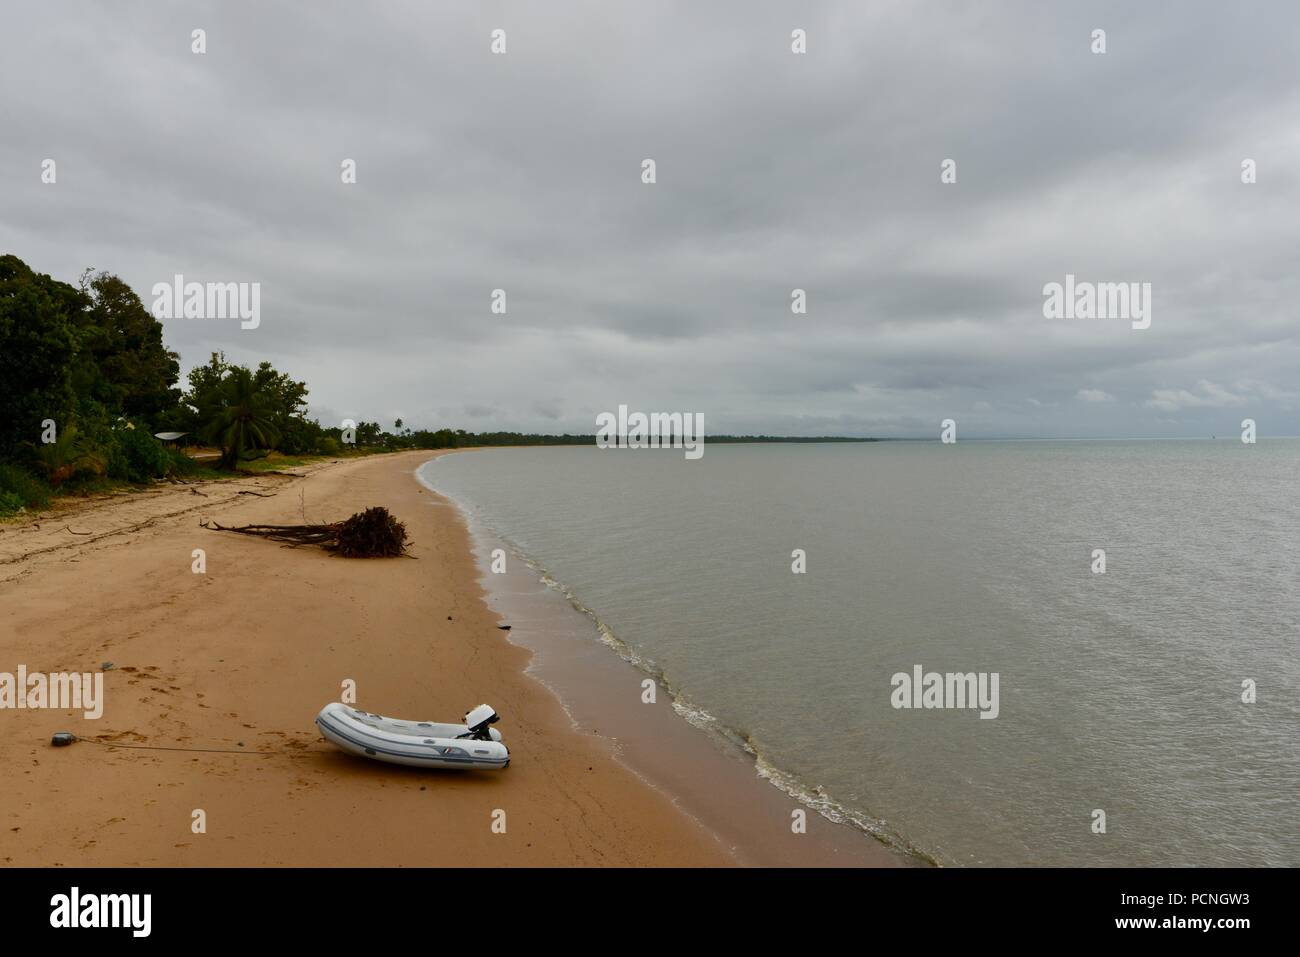 A small inflatable boat on the beach at Cardwell, Queensland, Australia - Stock Image